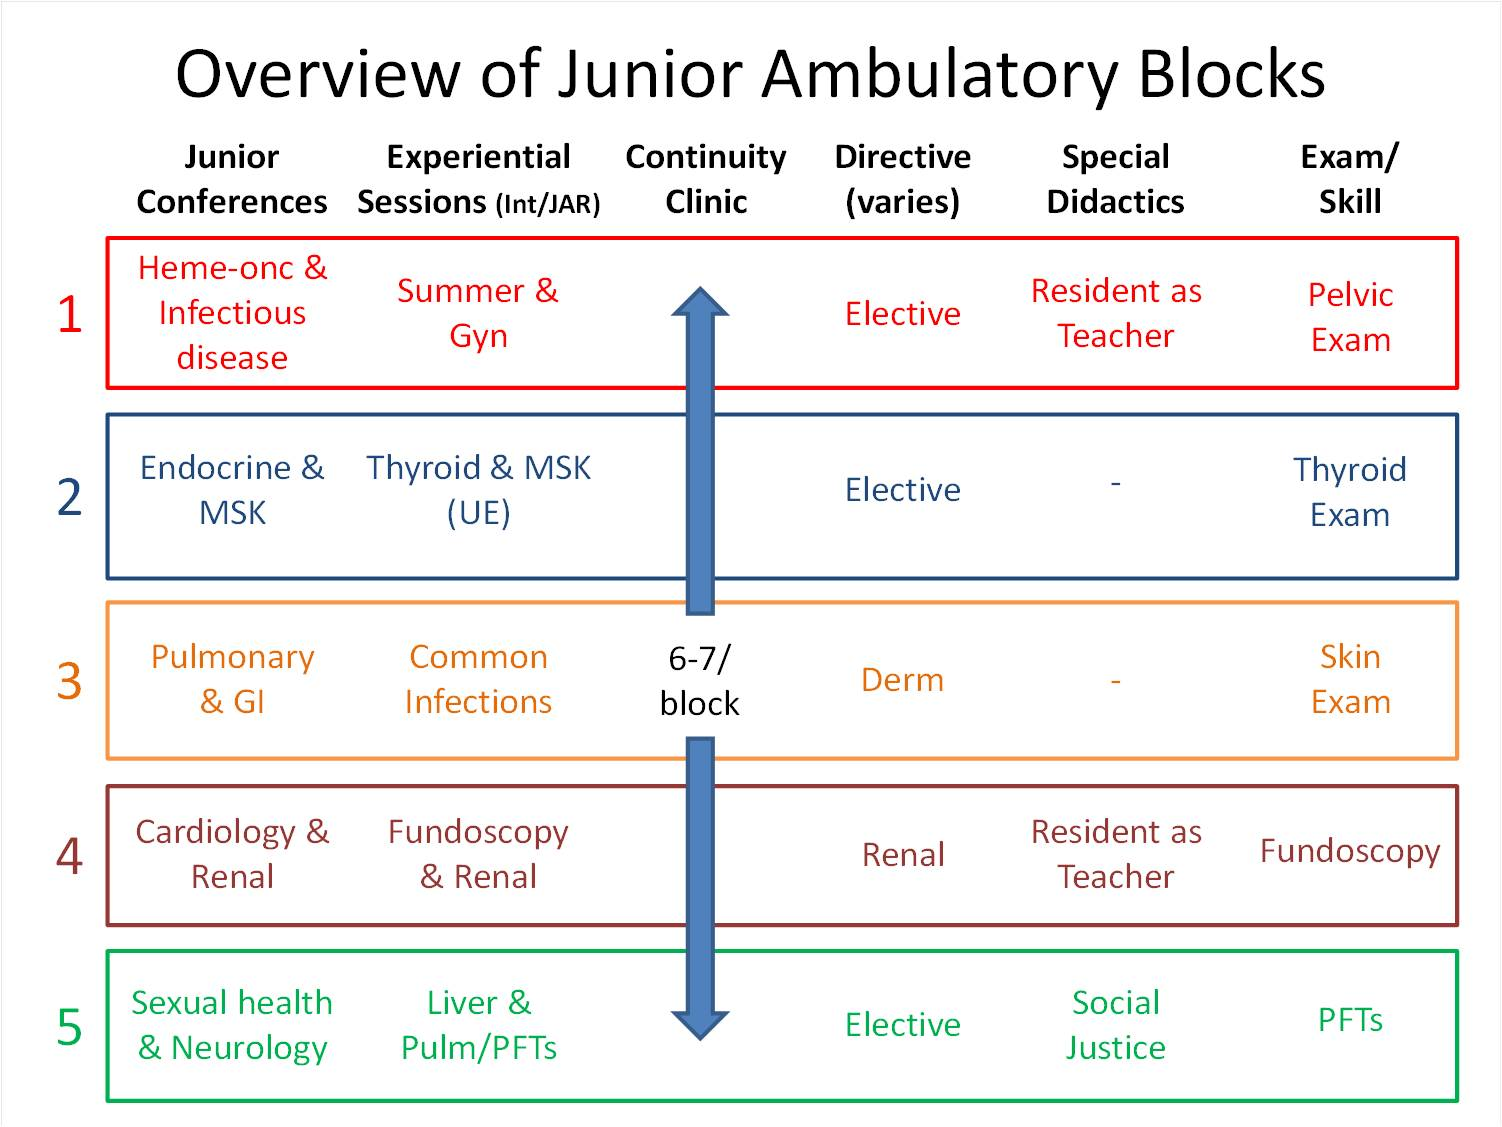 Overview of Junior Ambulatory Blocks